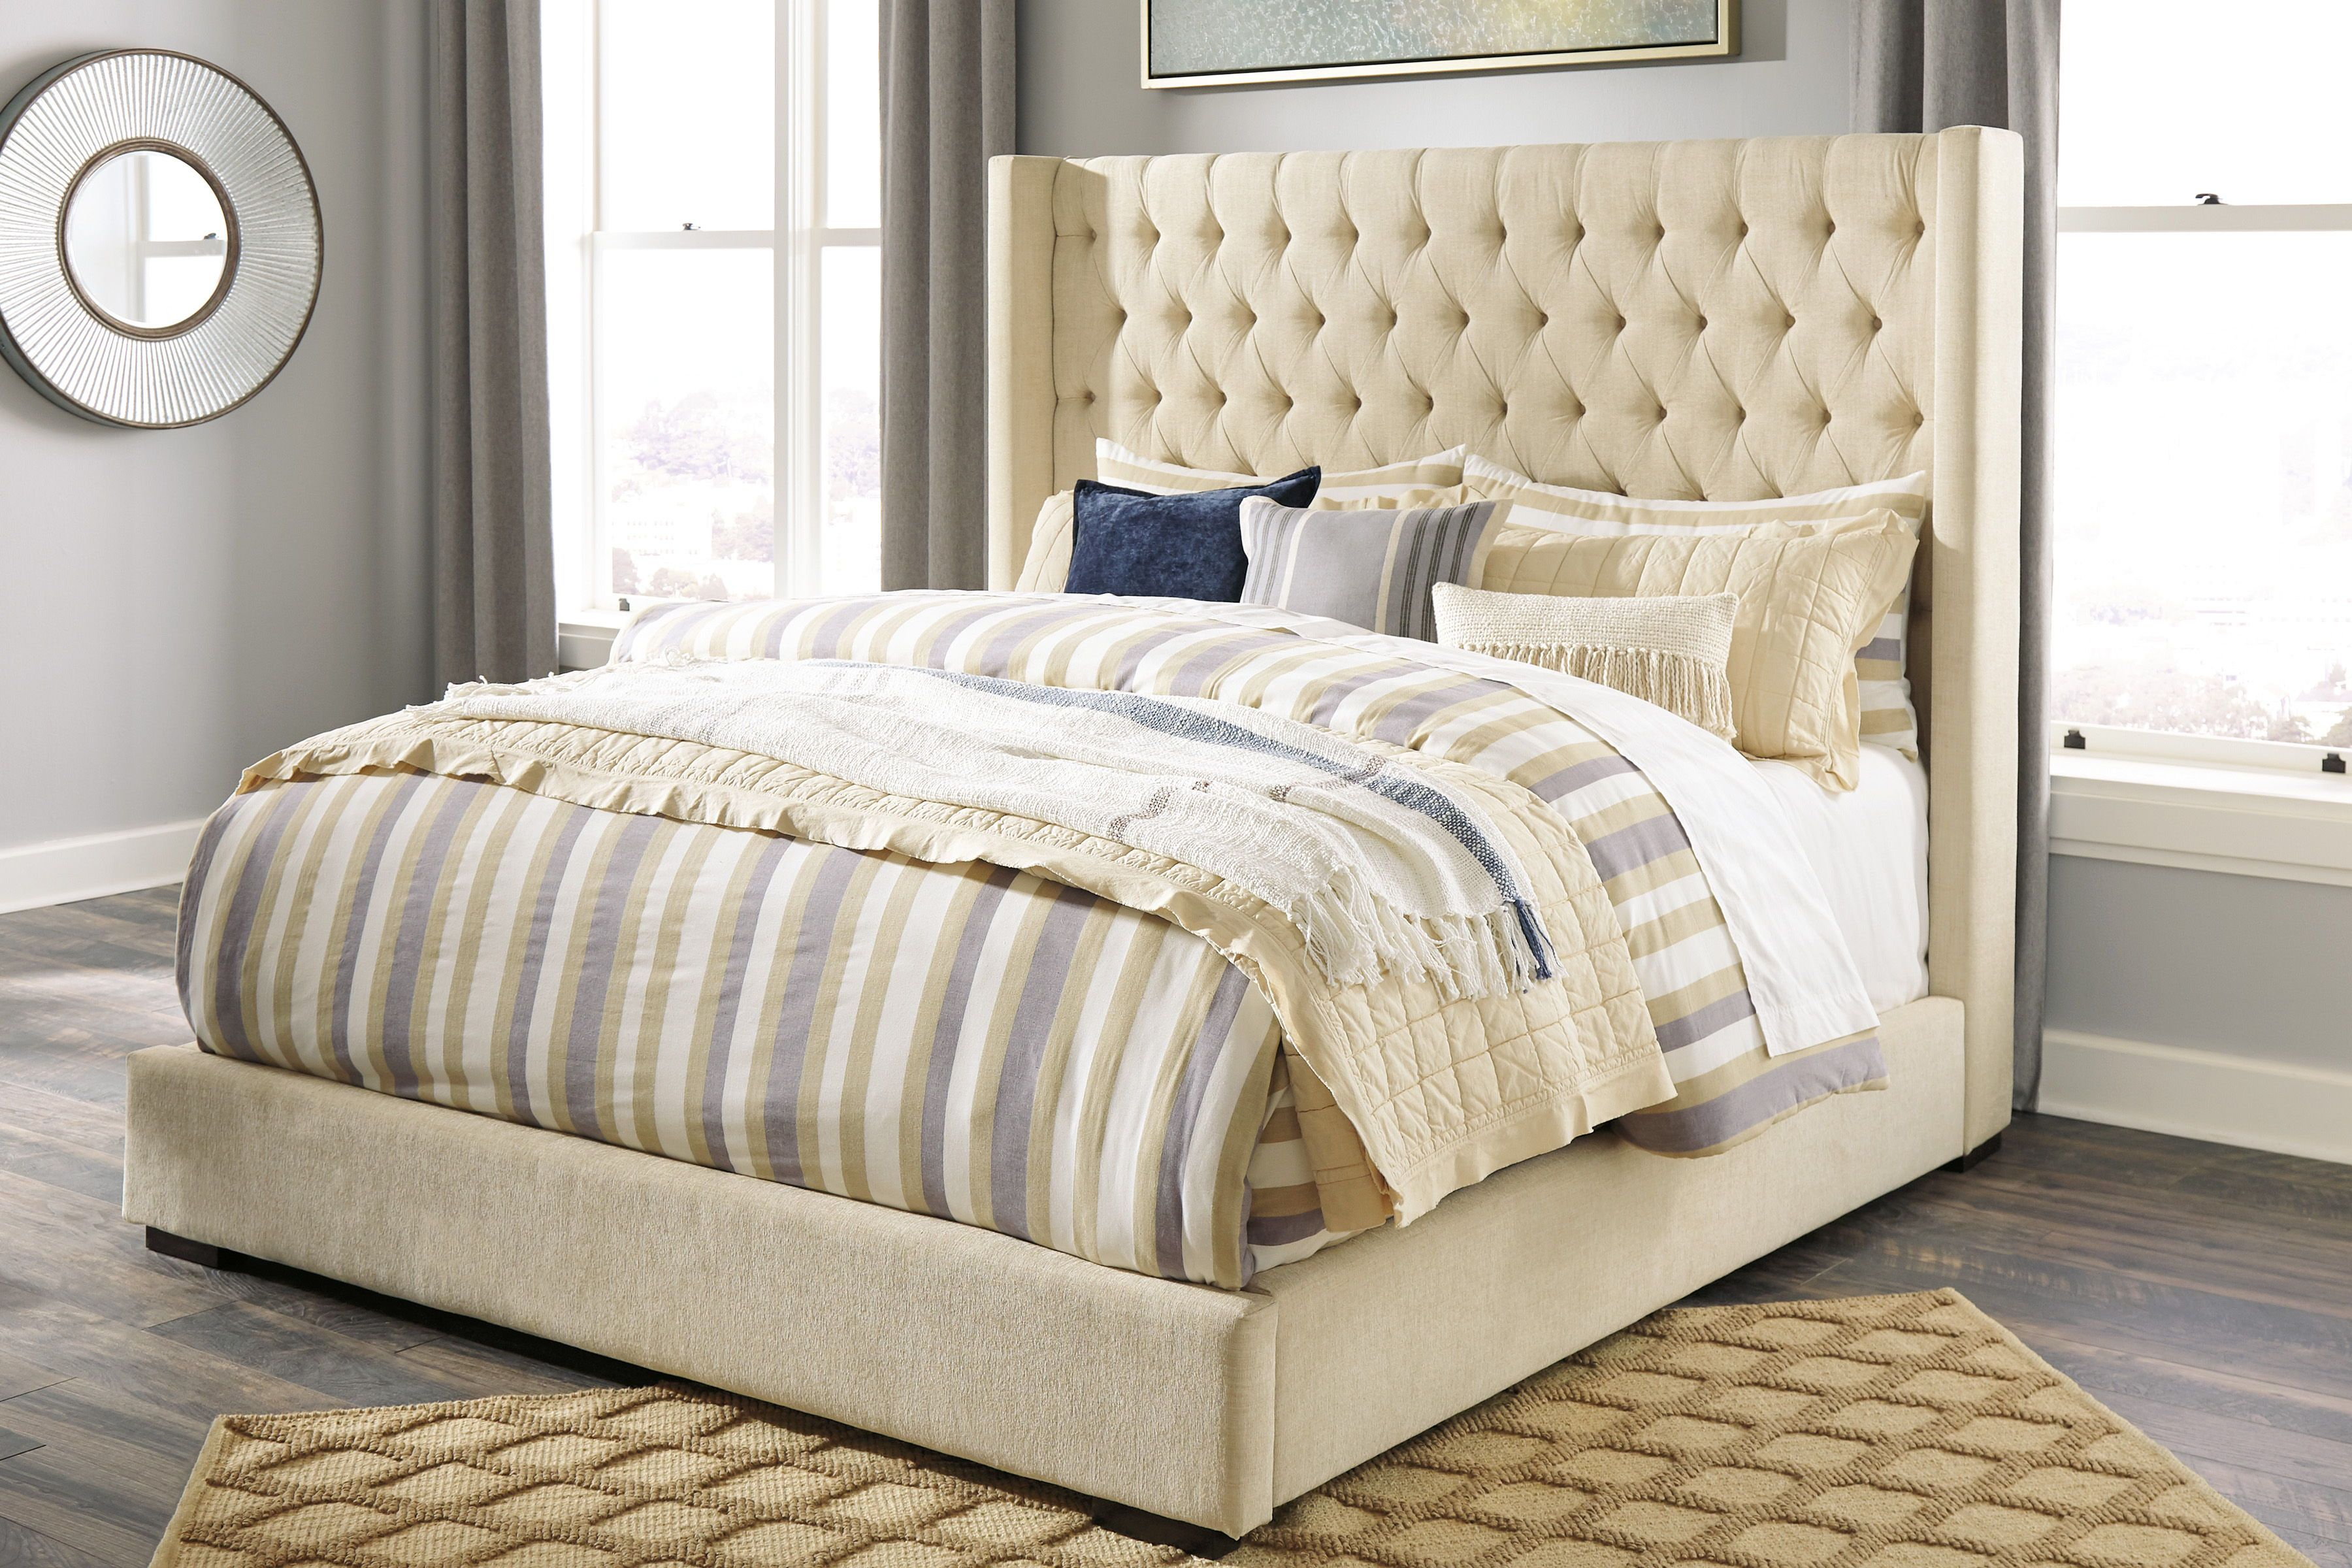 Norrister Beige King UPH Bed Queen upholstered bed